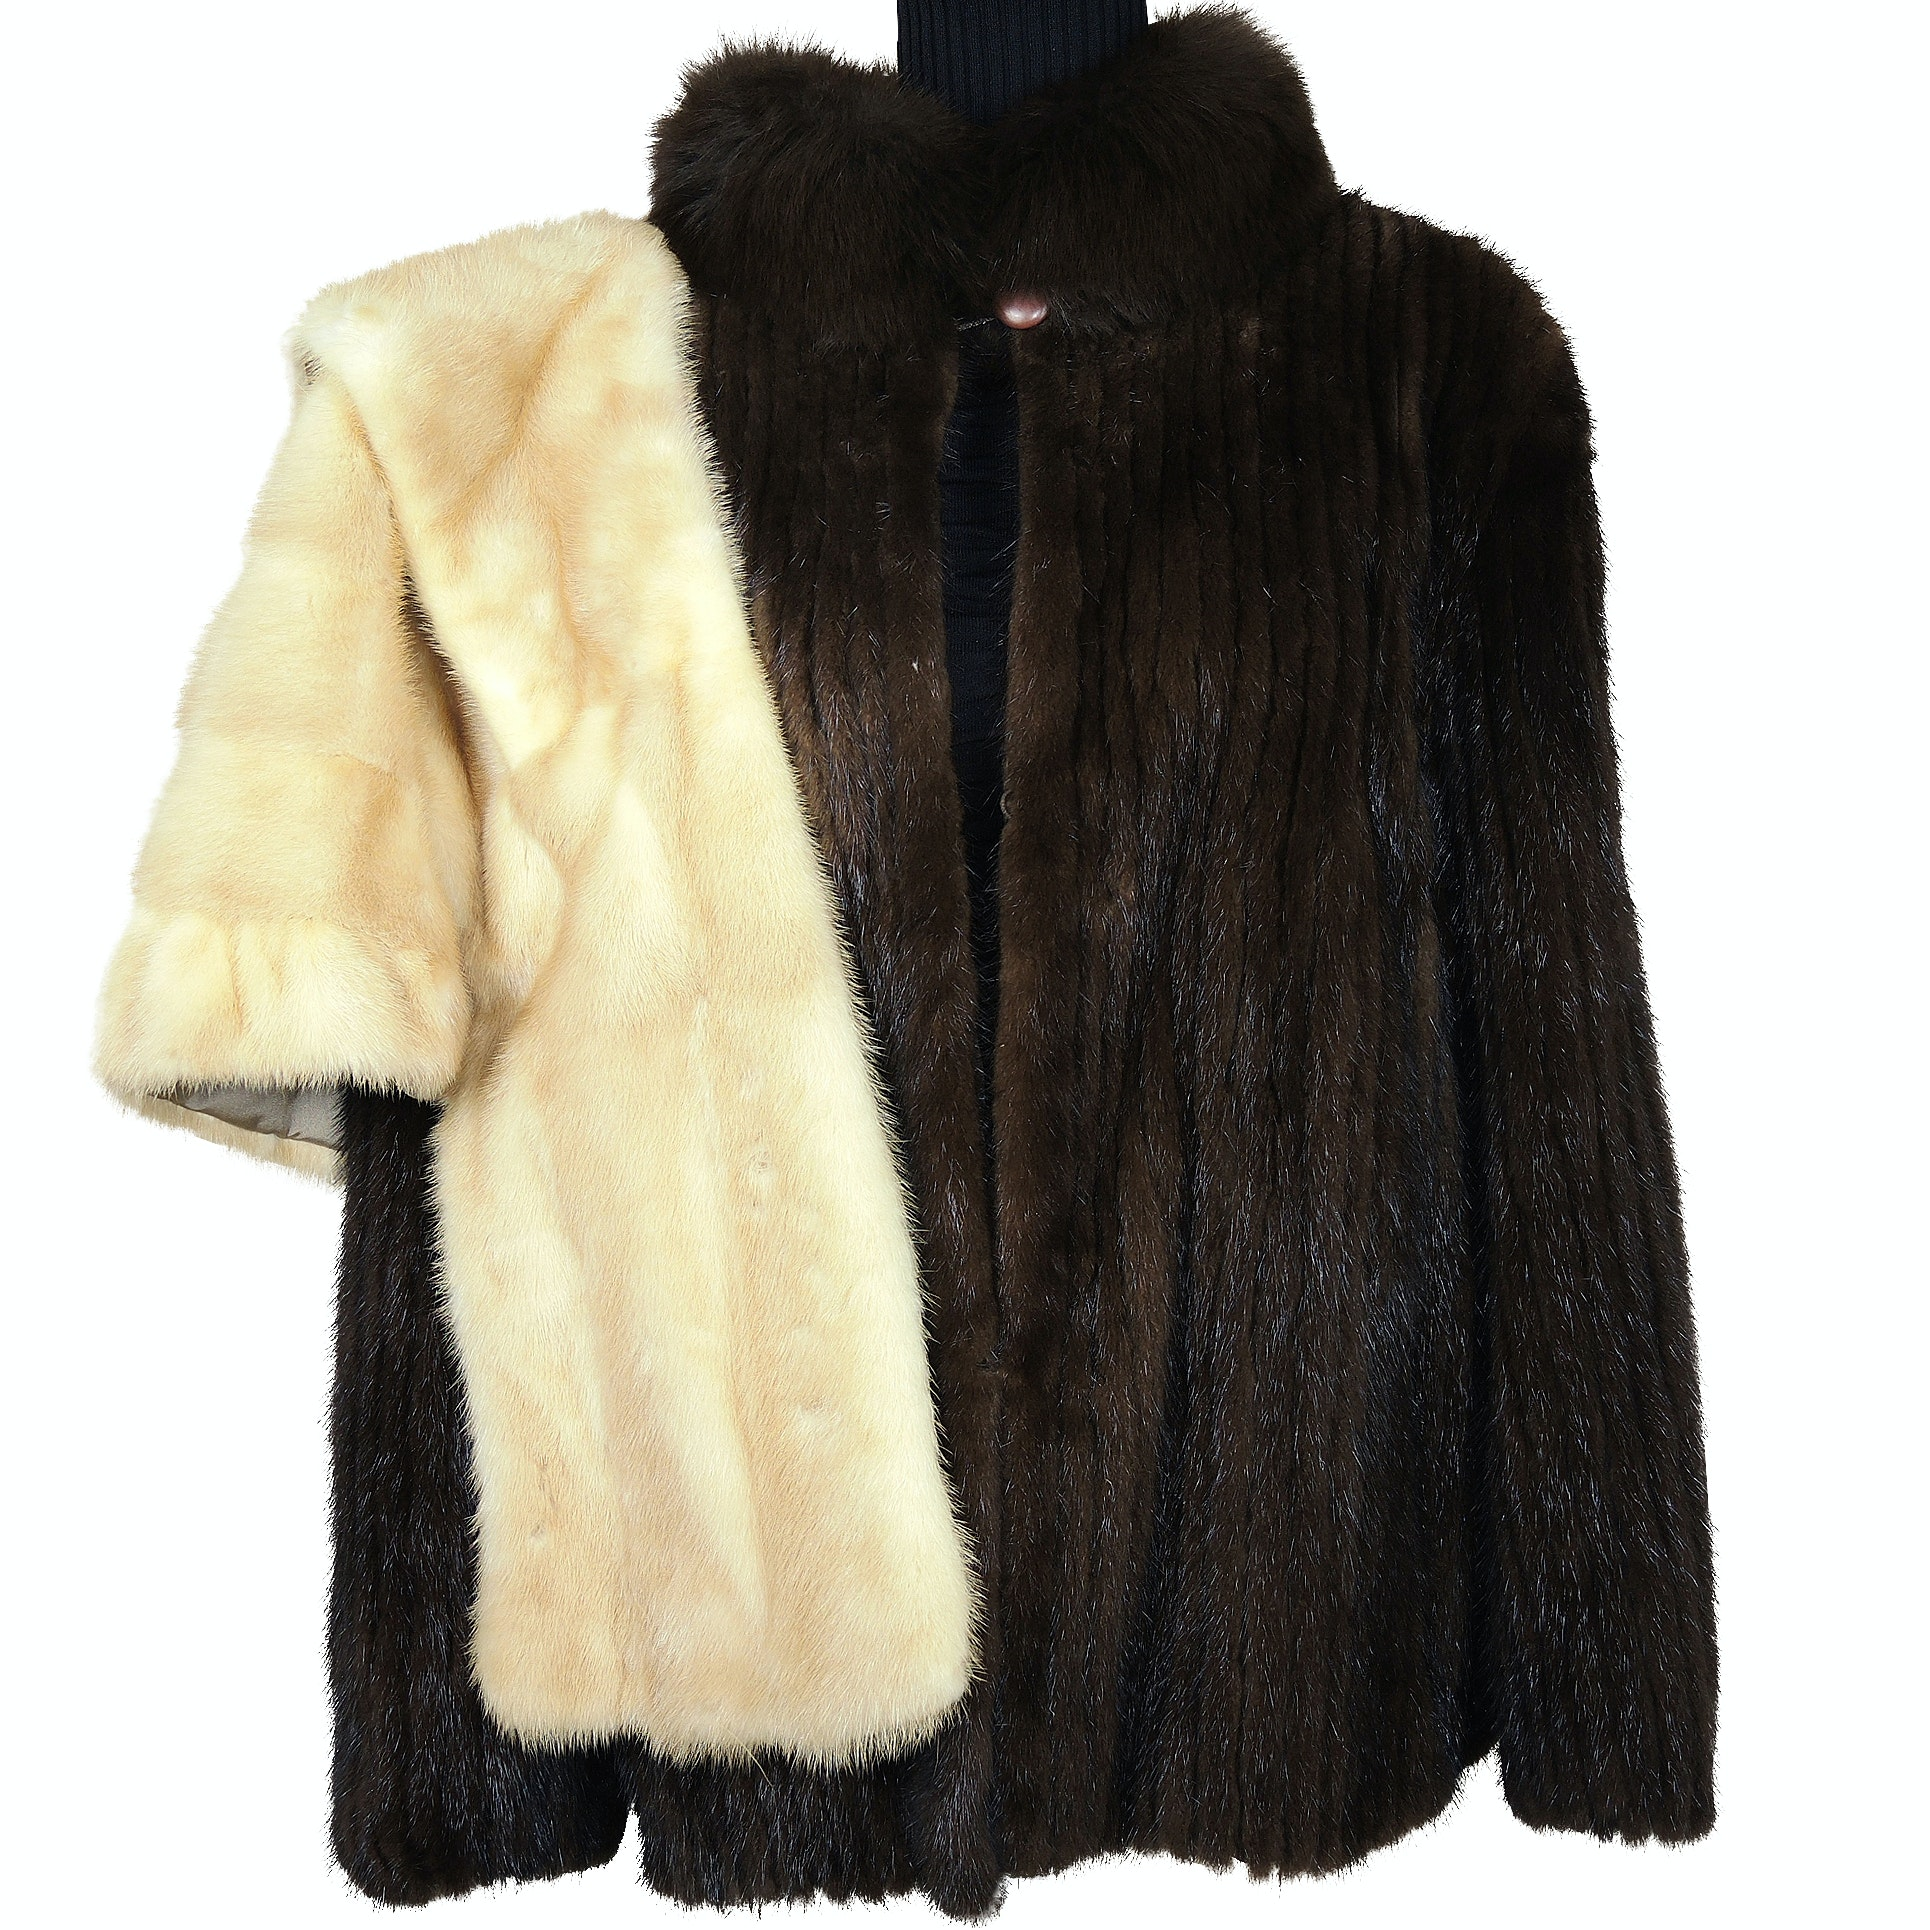 Natural Mink Fur Coat and Shillito's Fur Salon Mink Fur Stole